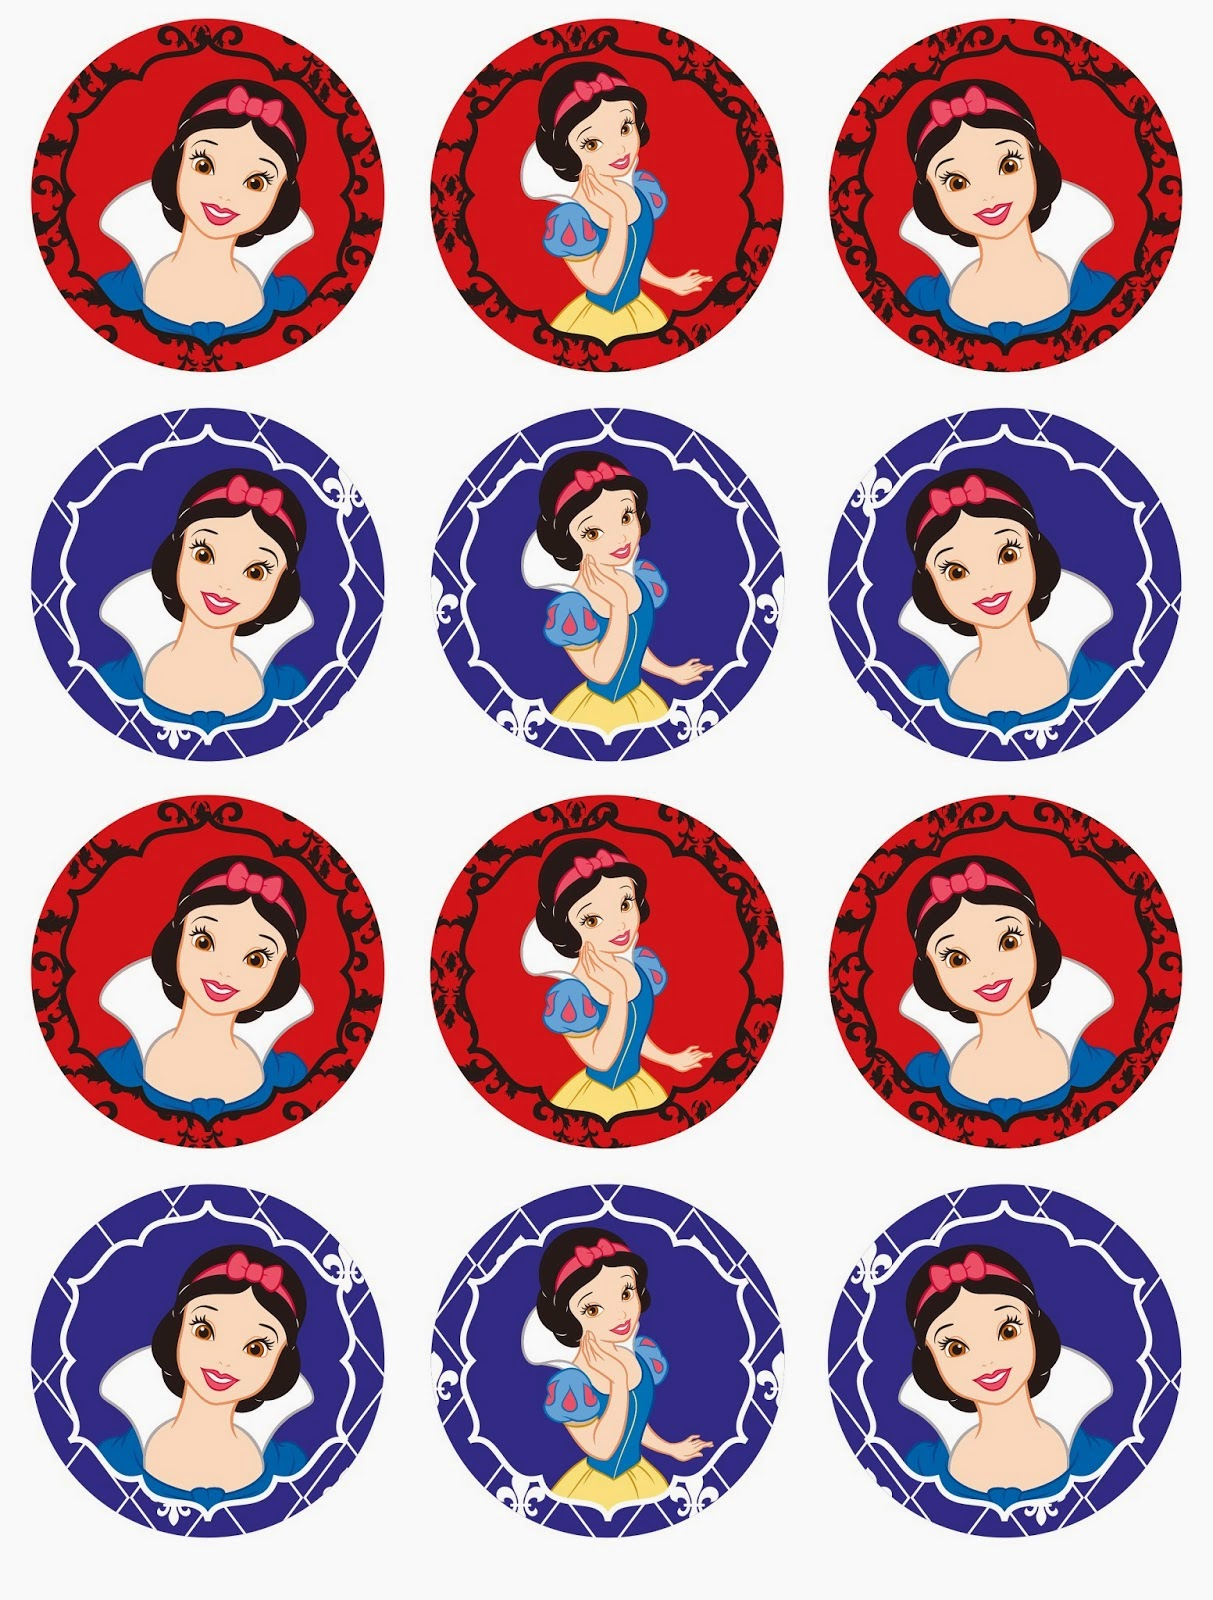 image about Snow White Printable called Adorable Snow White Absolutely free Printable Mini Package. - Oh My Fiesta! within